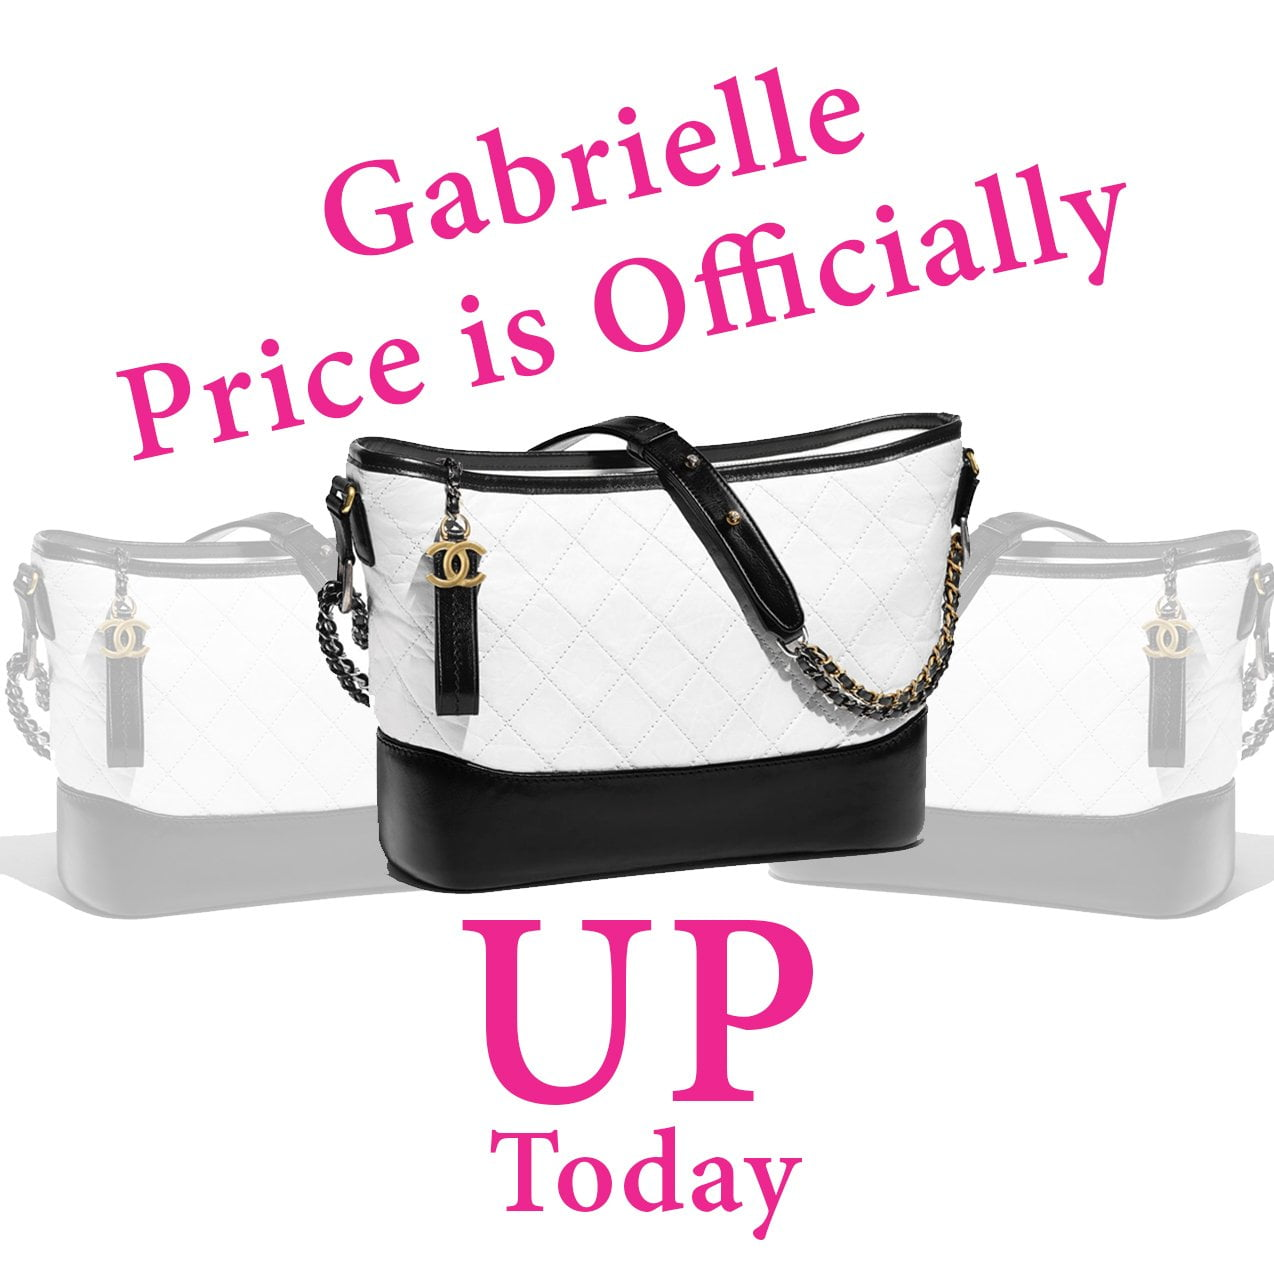 d65cccd357bf It's Official: Chanel Gabrielle Prices are Up - PurseBop